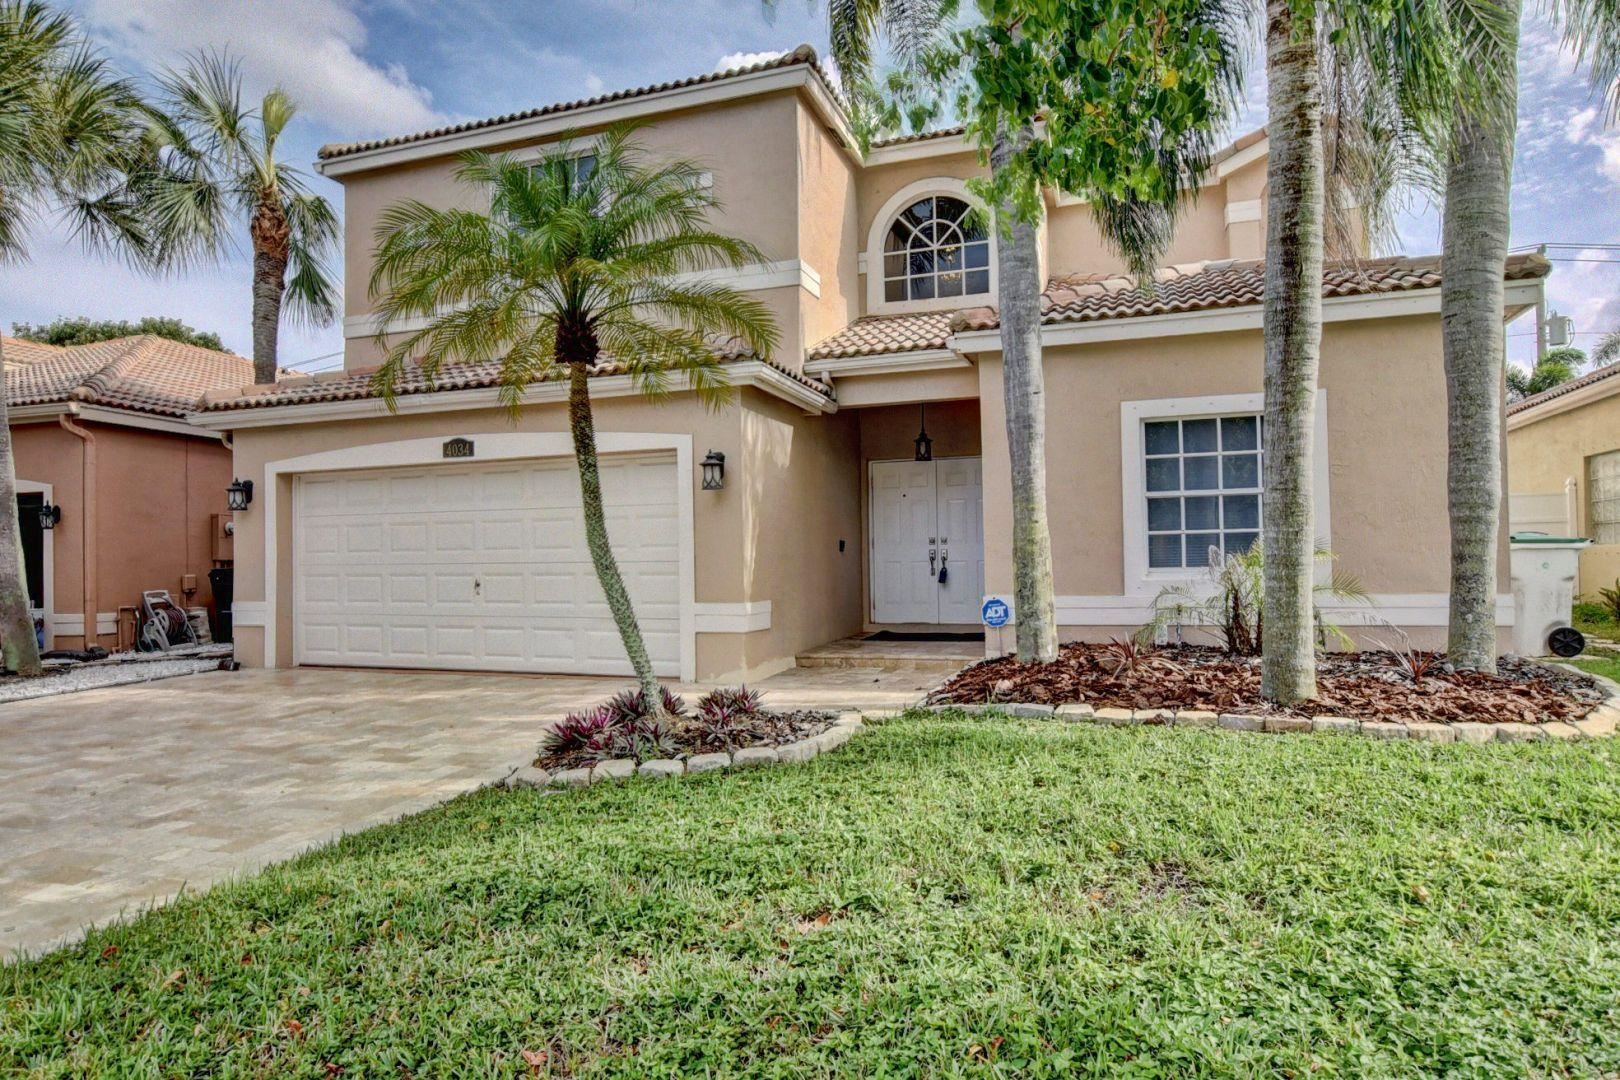 4034 NW 62 Court, Coconut Creek, FL 33073 - #: RX-10657753